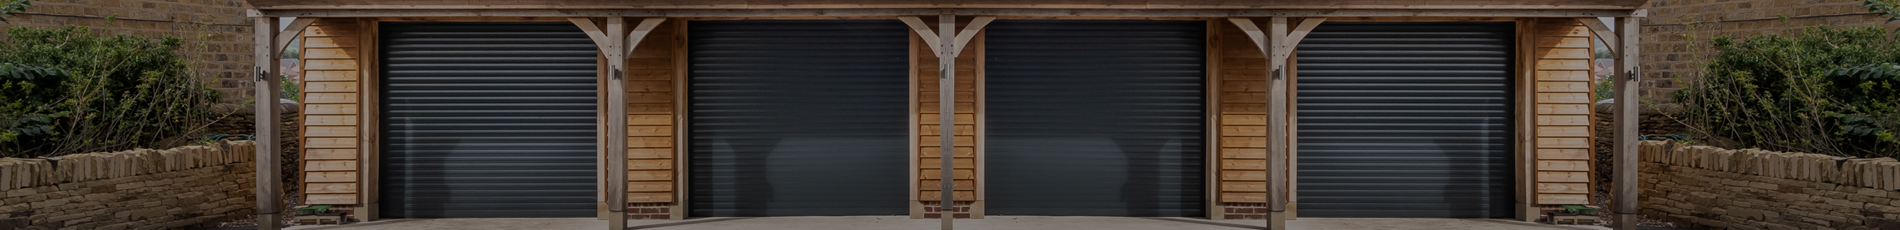 Roller Shutter Garage Doors – The Different Components